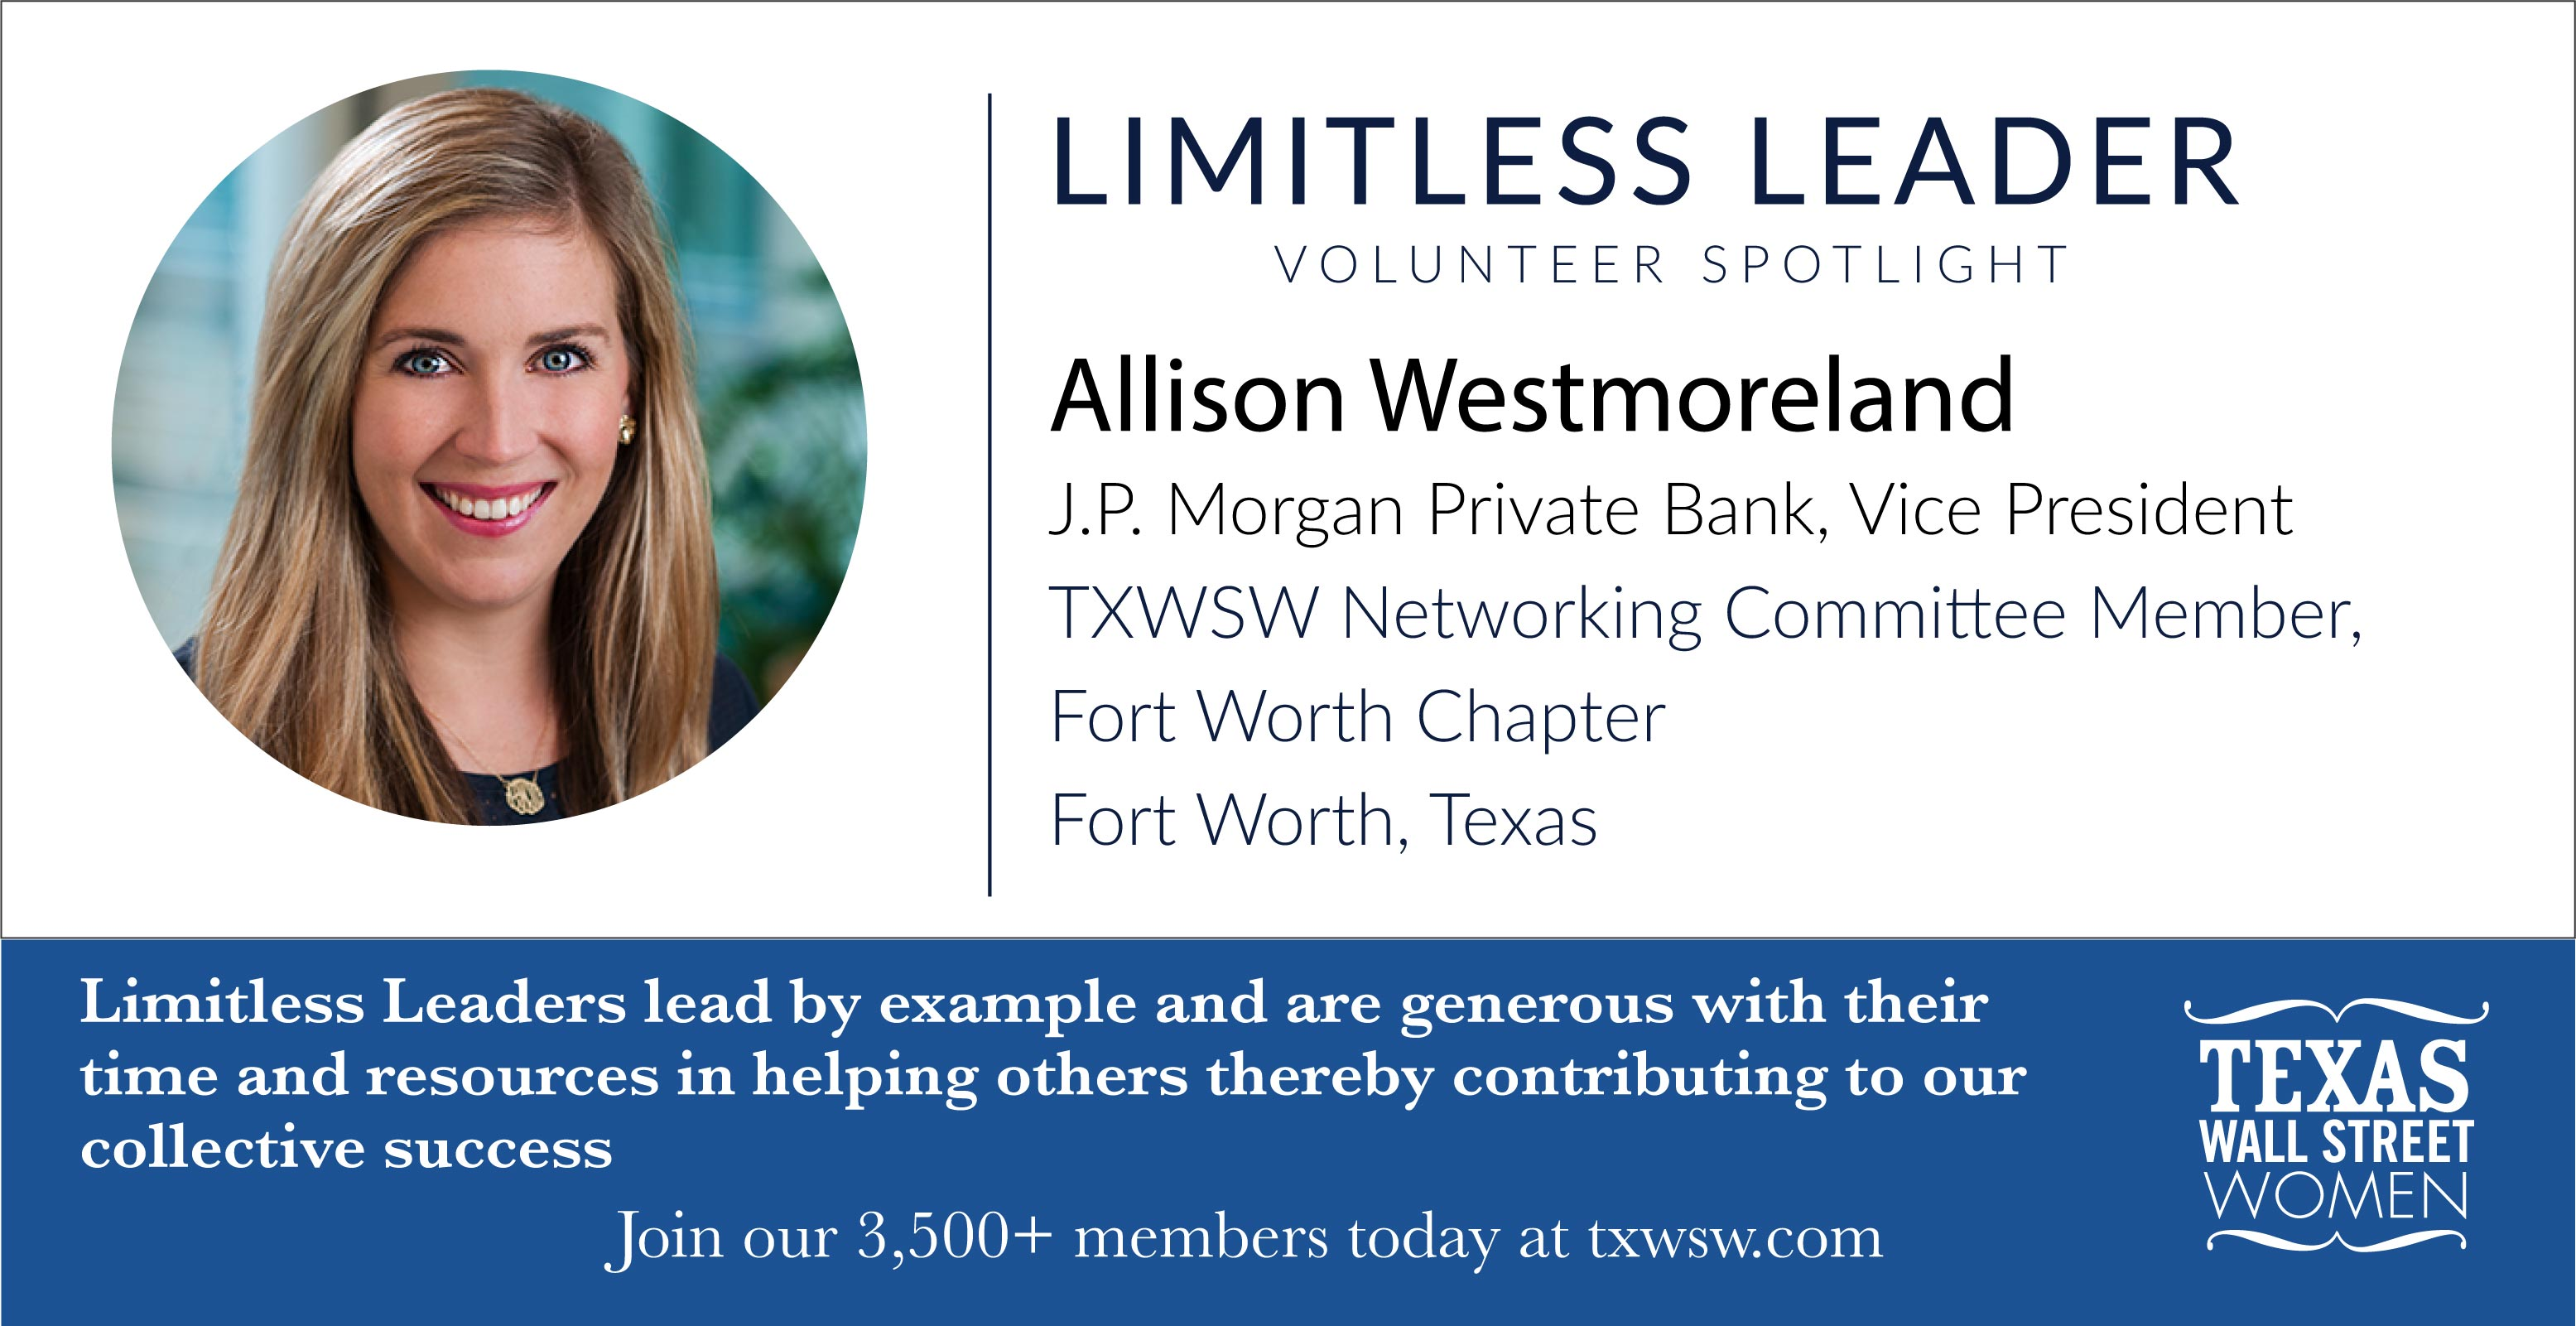 Allison Westmoreland Limitless Leader